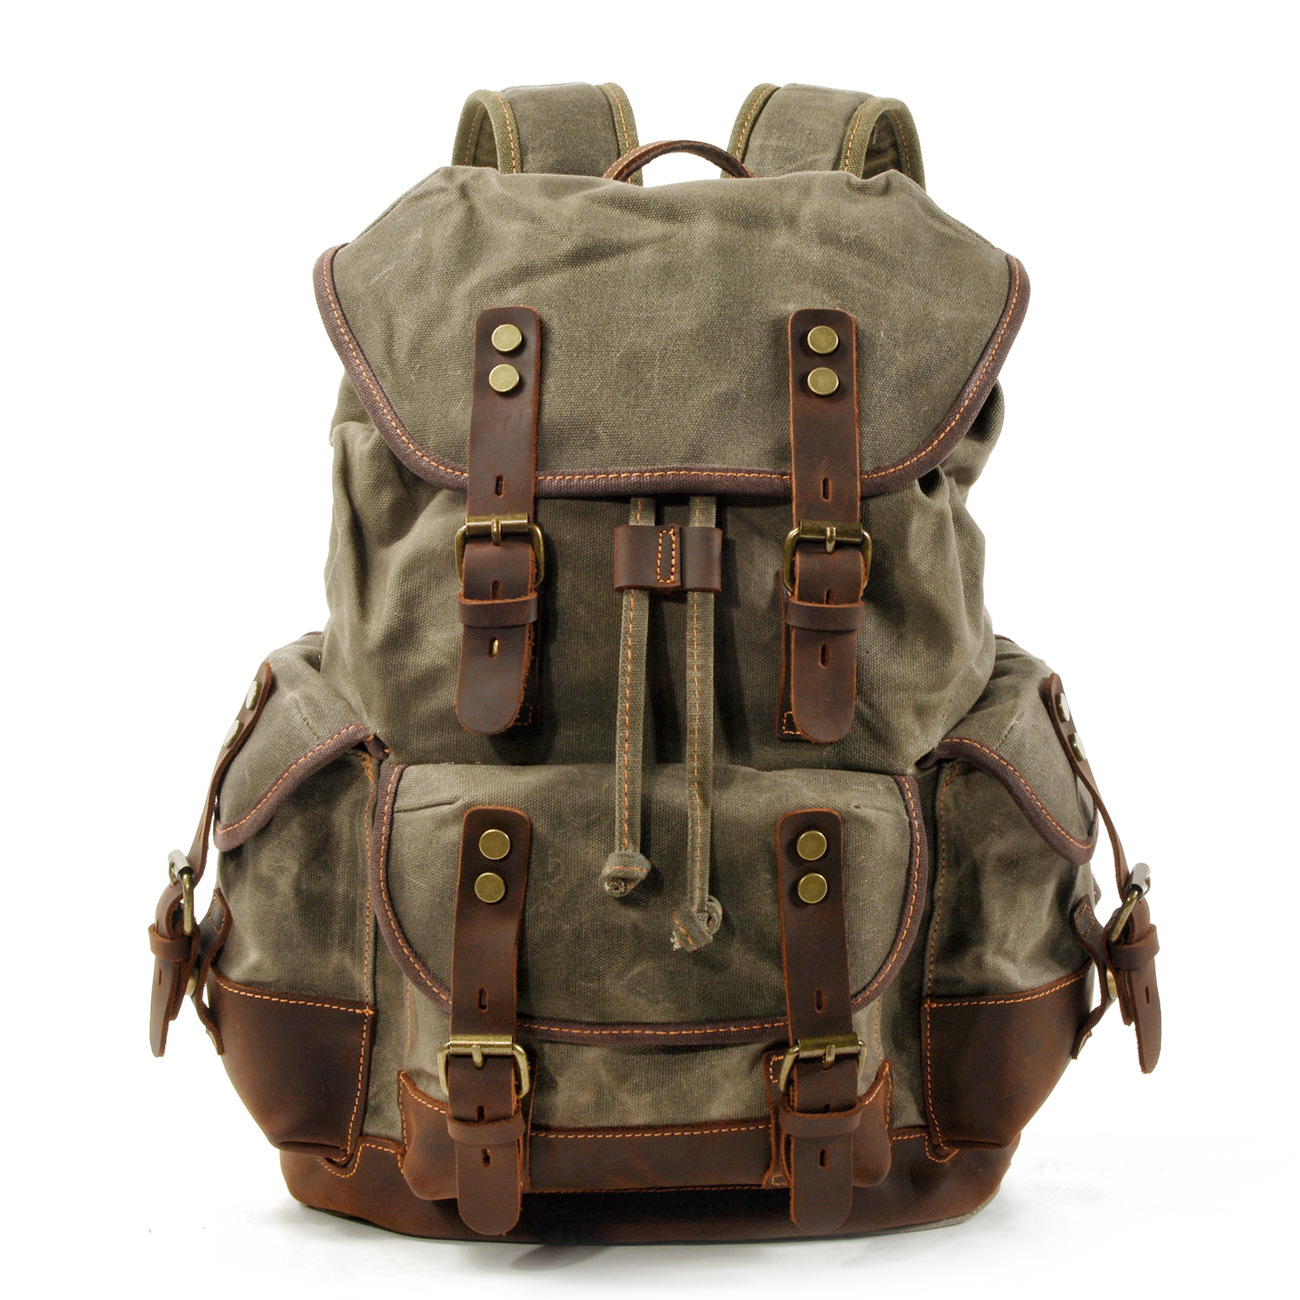 New Top Large Capacity Leather Canvas Backpacks For Men School Bags Vintage Waterproof Daypack Laptop Backpack BagNew Top Large Capacity Leather Canvas Backpacks For Men School Bags Vintage Waterproof Daypack Laptop Backpack Bag